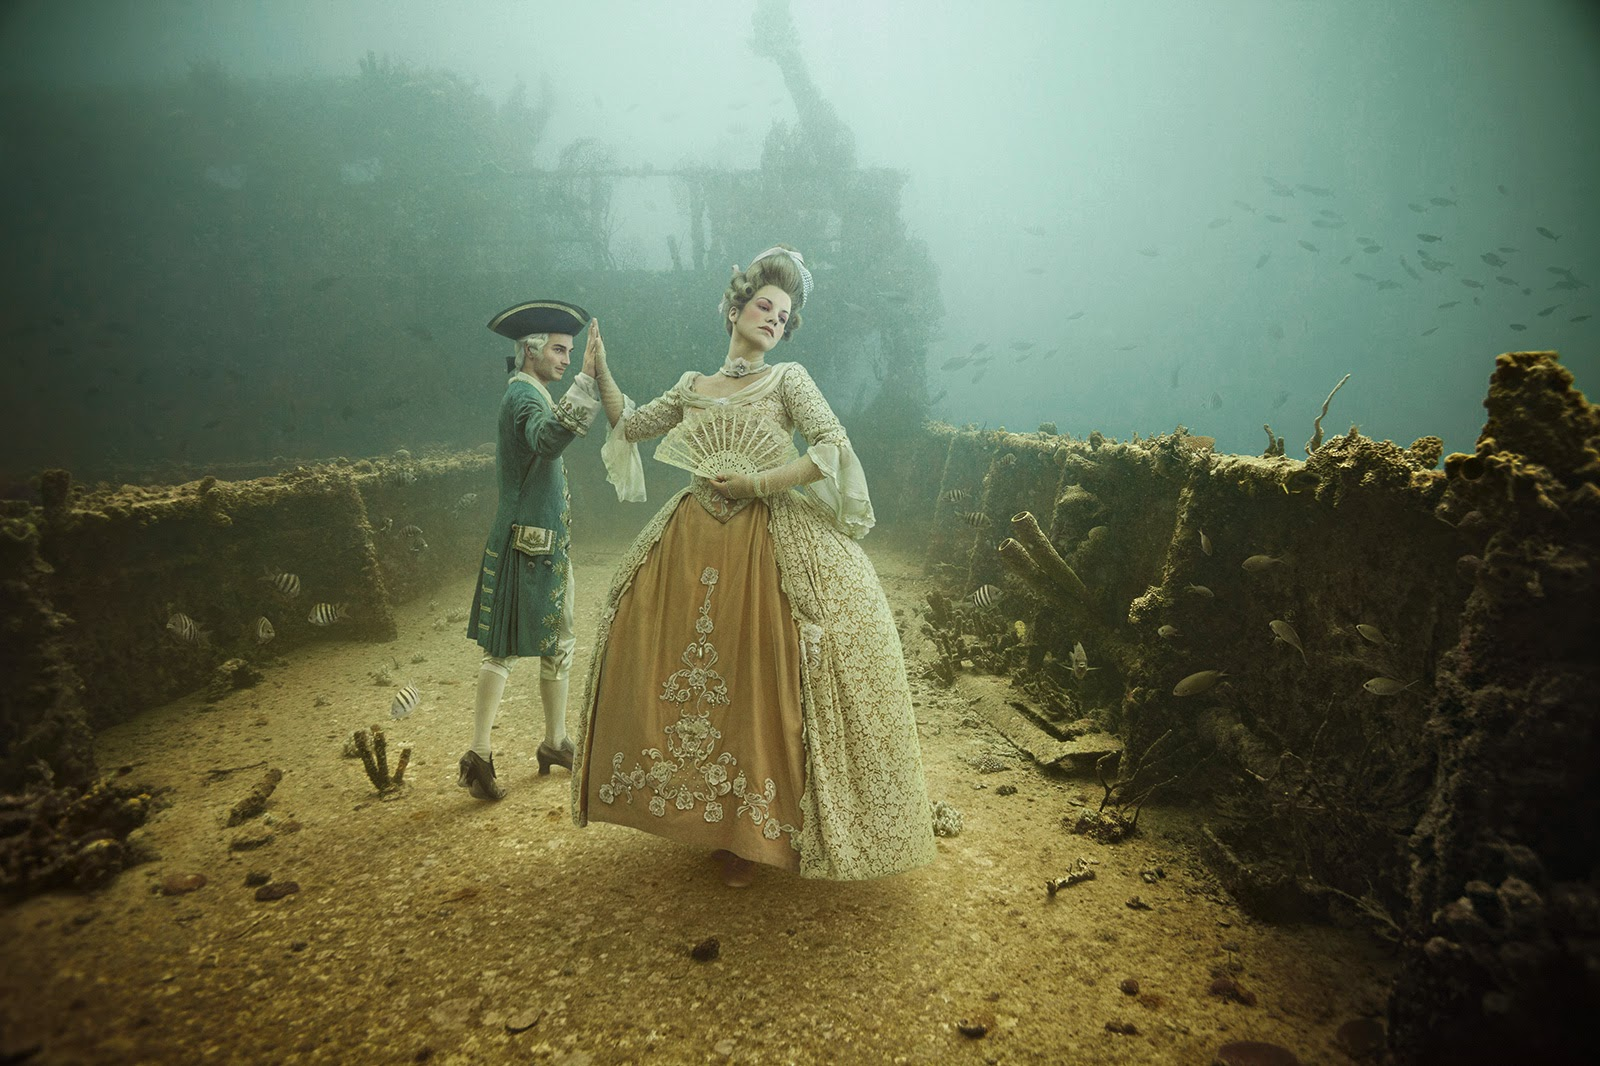 10-Andreas-Franke-Surreal-Artificial-Reef-Photography-www-designstack-co